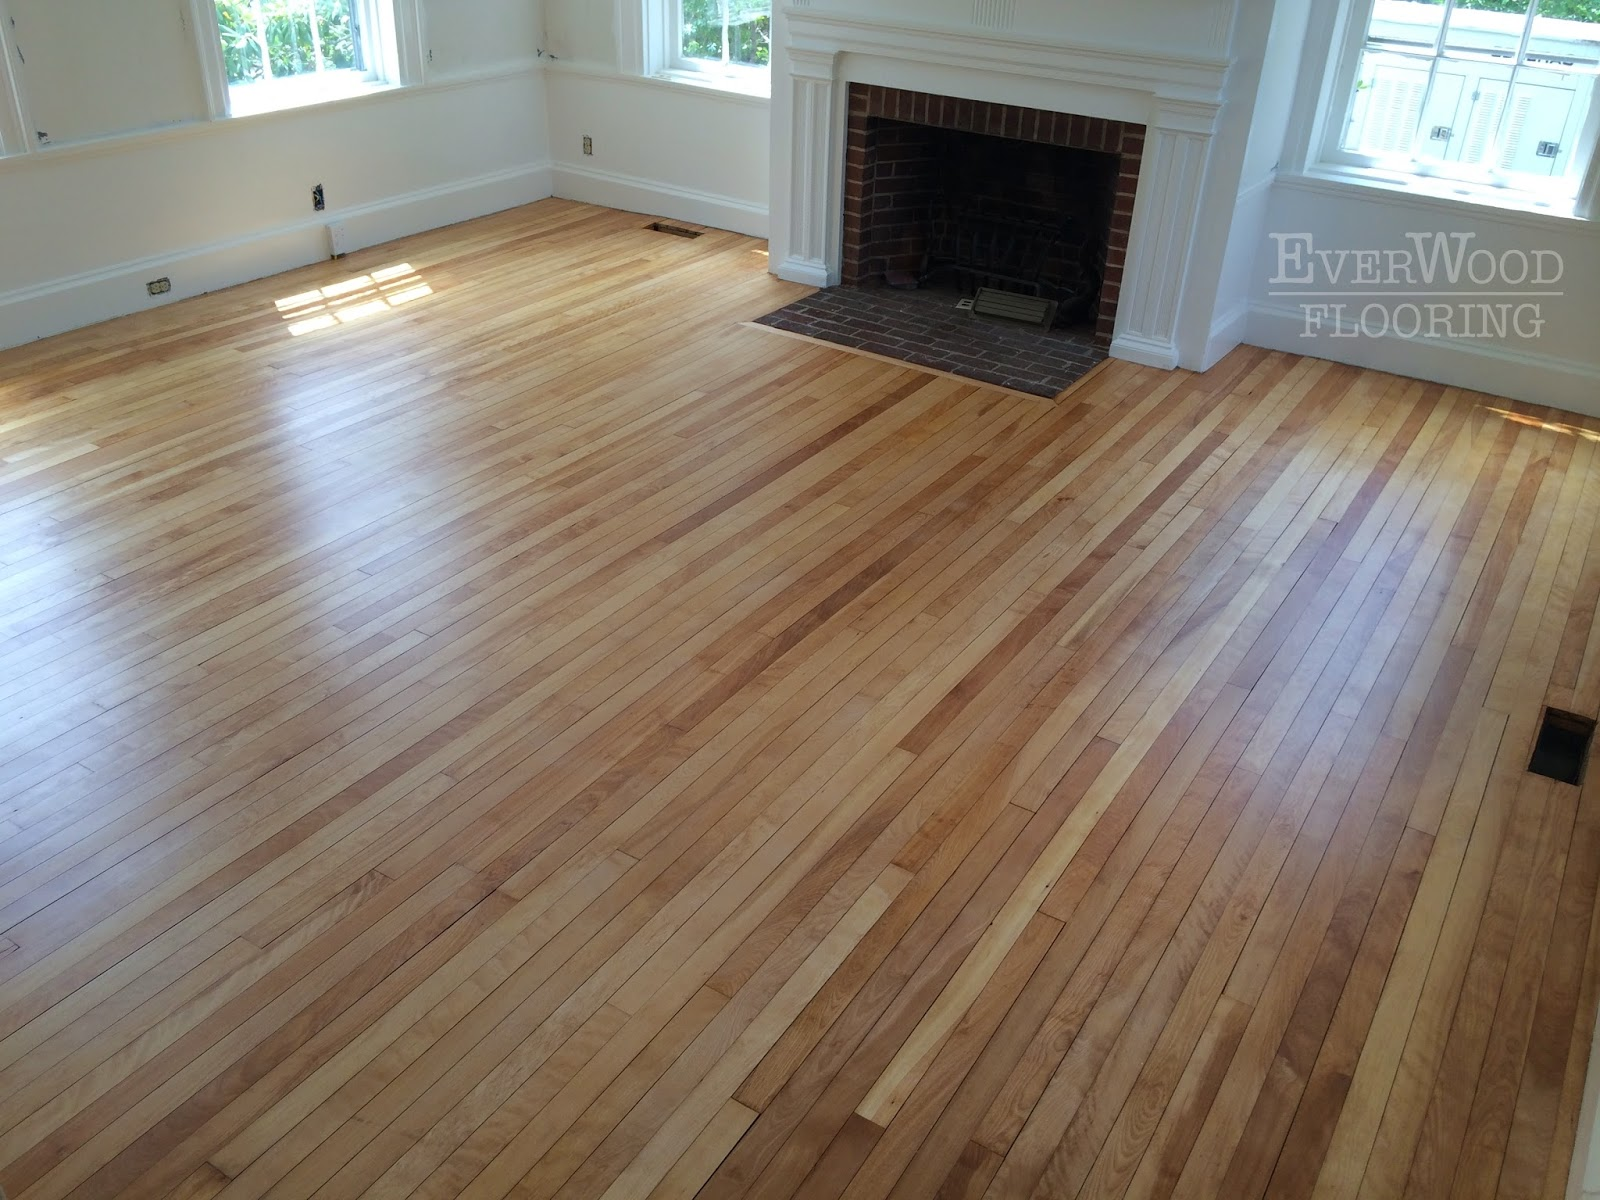 EverWood Flooring Project Profiles